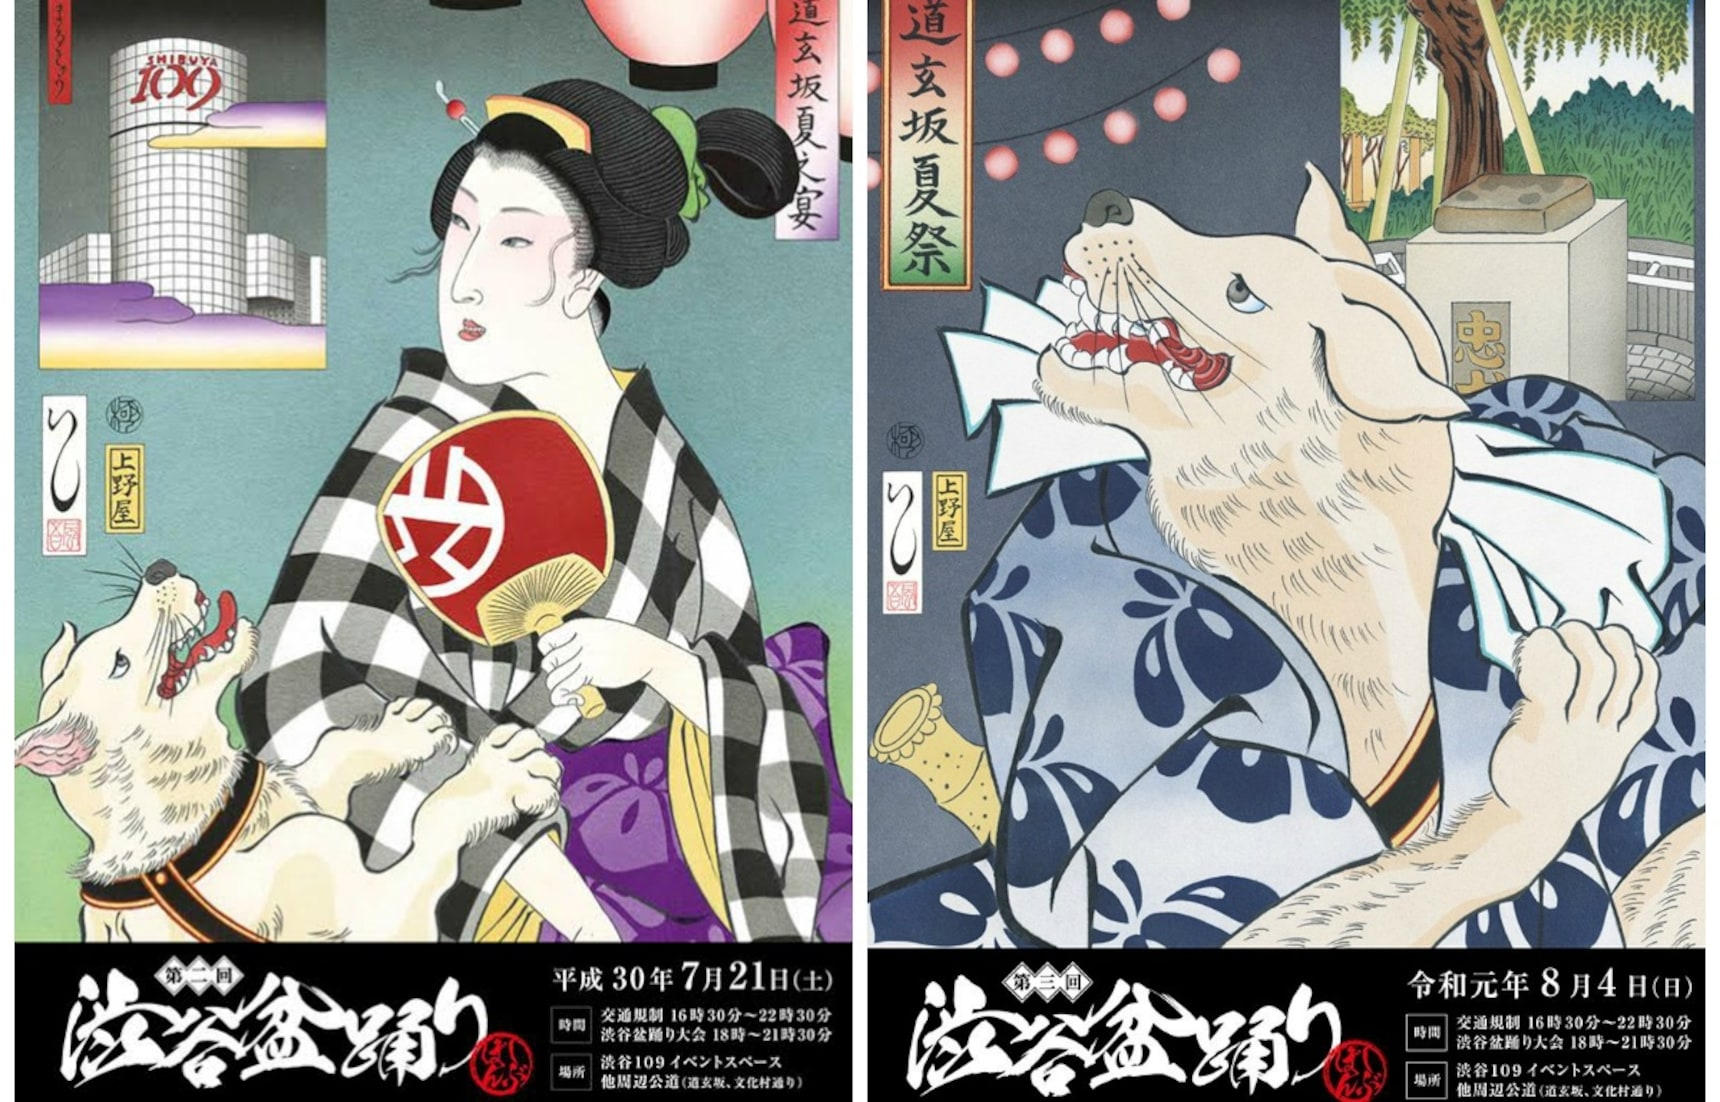 Awesome Ukiyo-e Posters for Shibuya Bon Odori